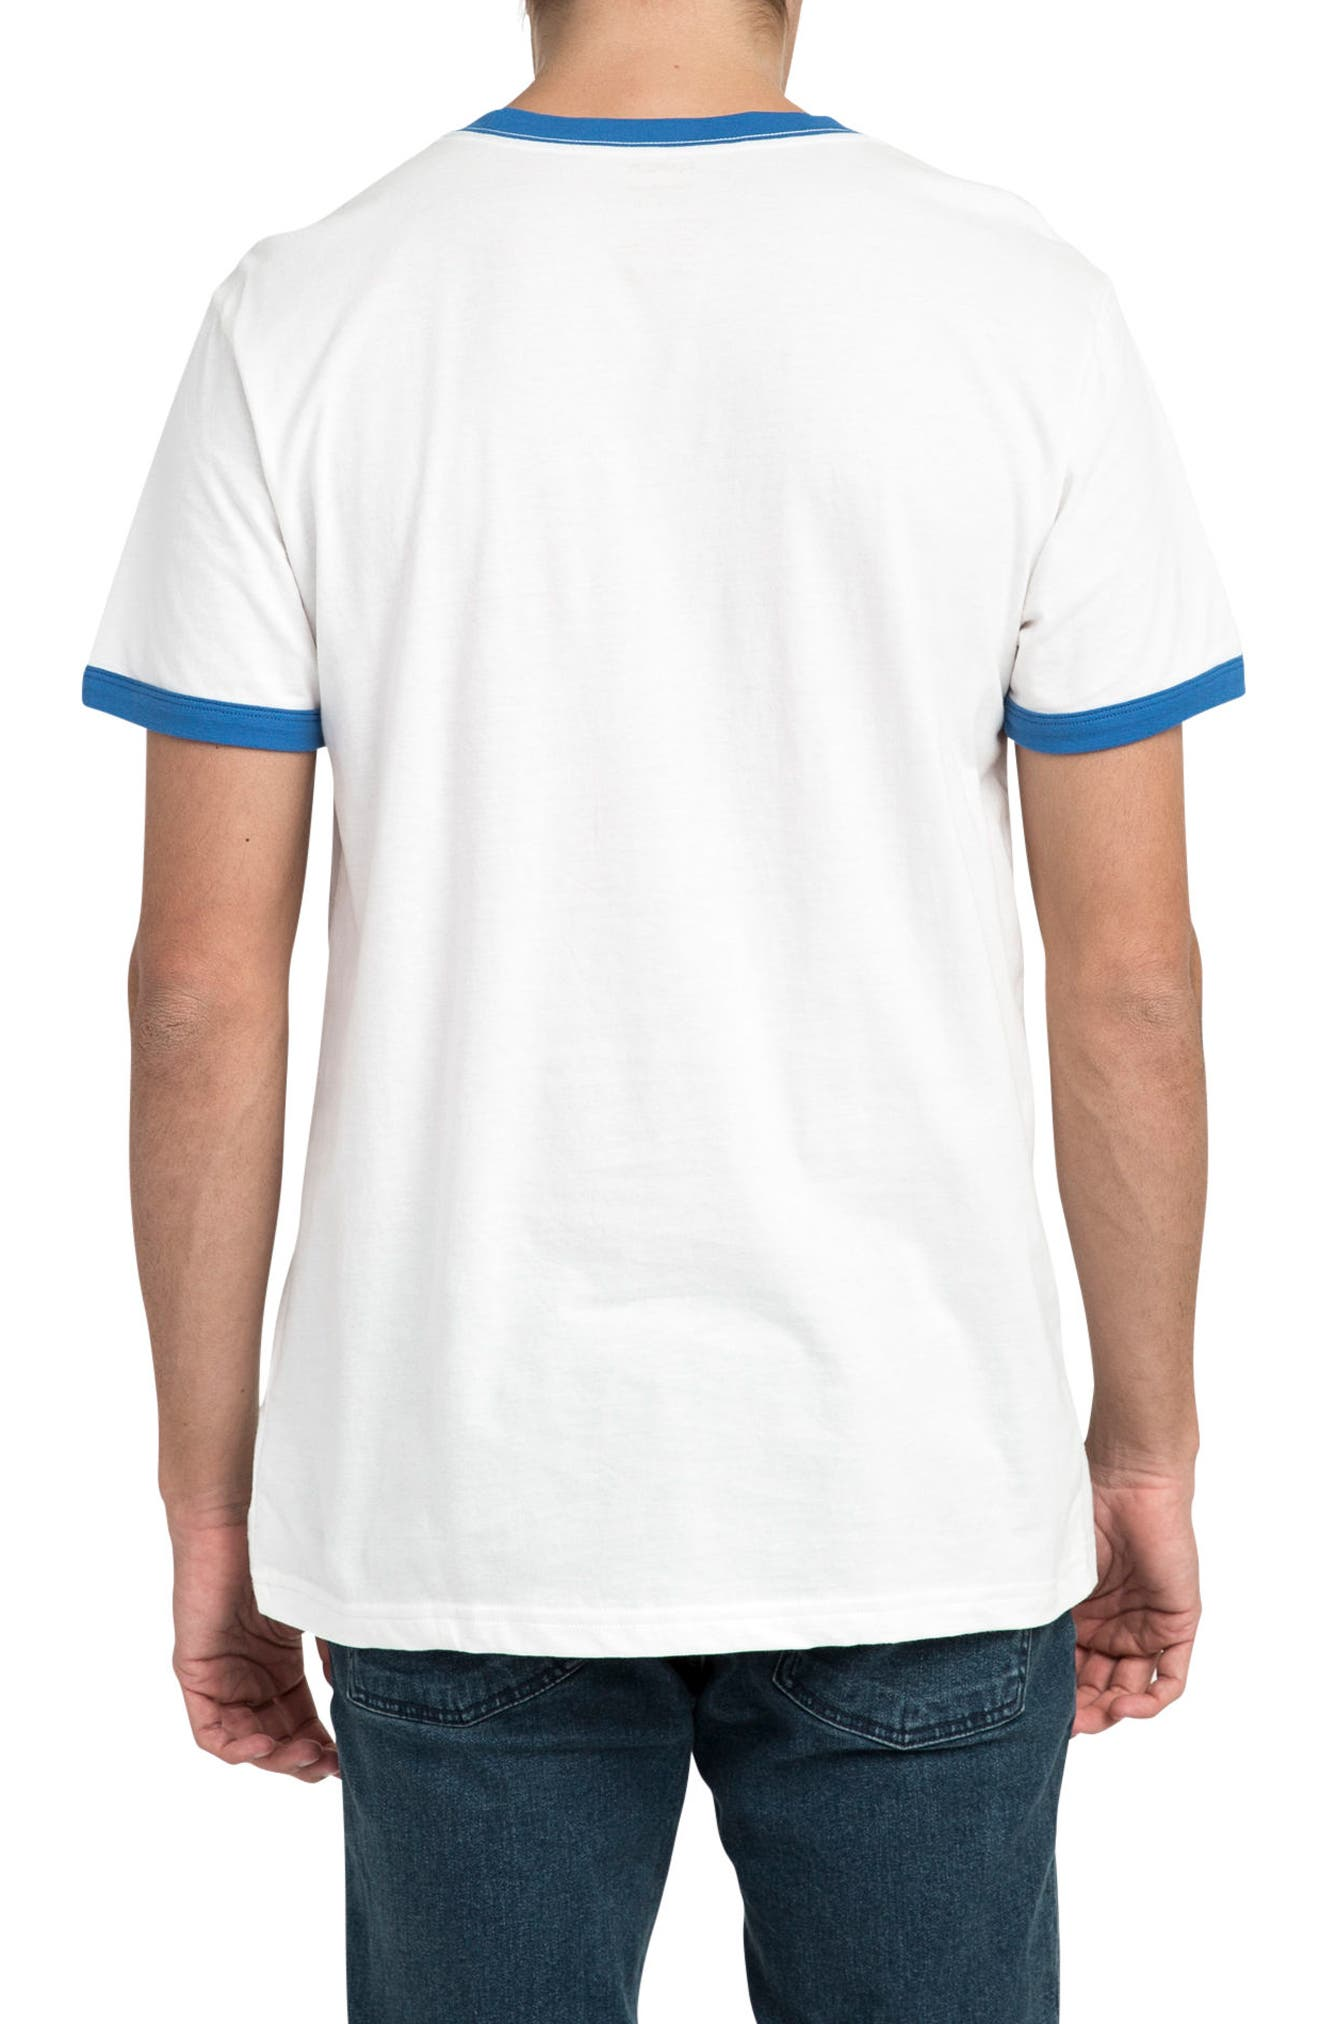 Volt Graphic Ringer T-Shirt,                             Alternate thumbnail 2, color,                             White/ Royal